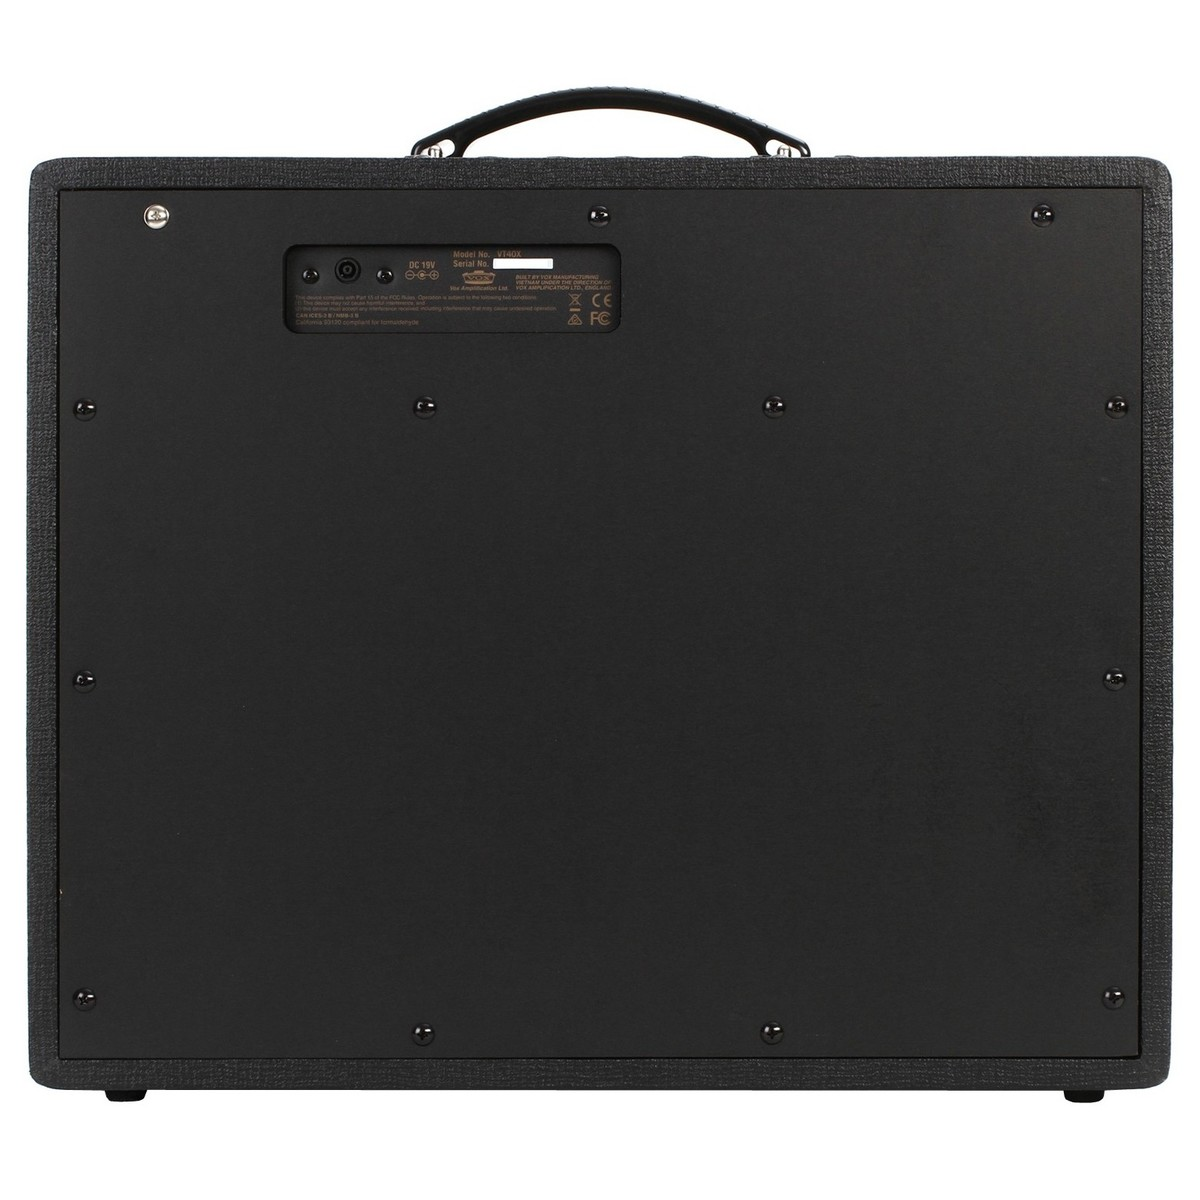 vox vt40x guitar combo with vfs5 foot controller b stock at gear4music. Black Bedroom Furniture Sets. Home Design Ideas